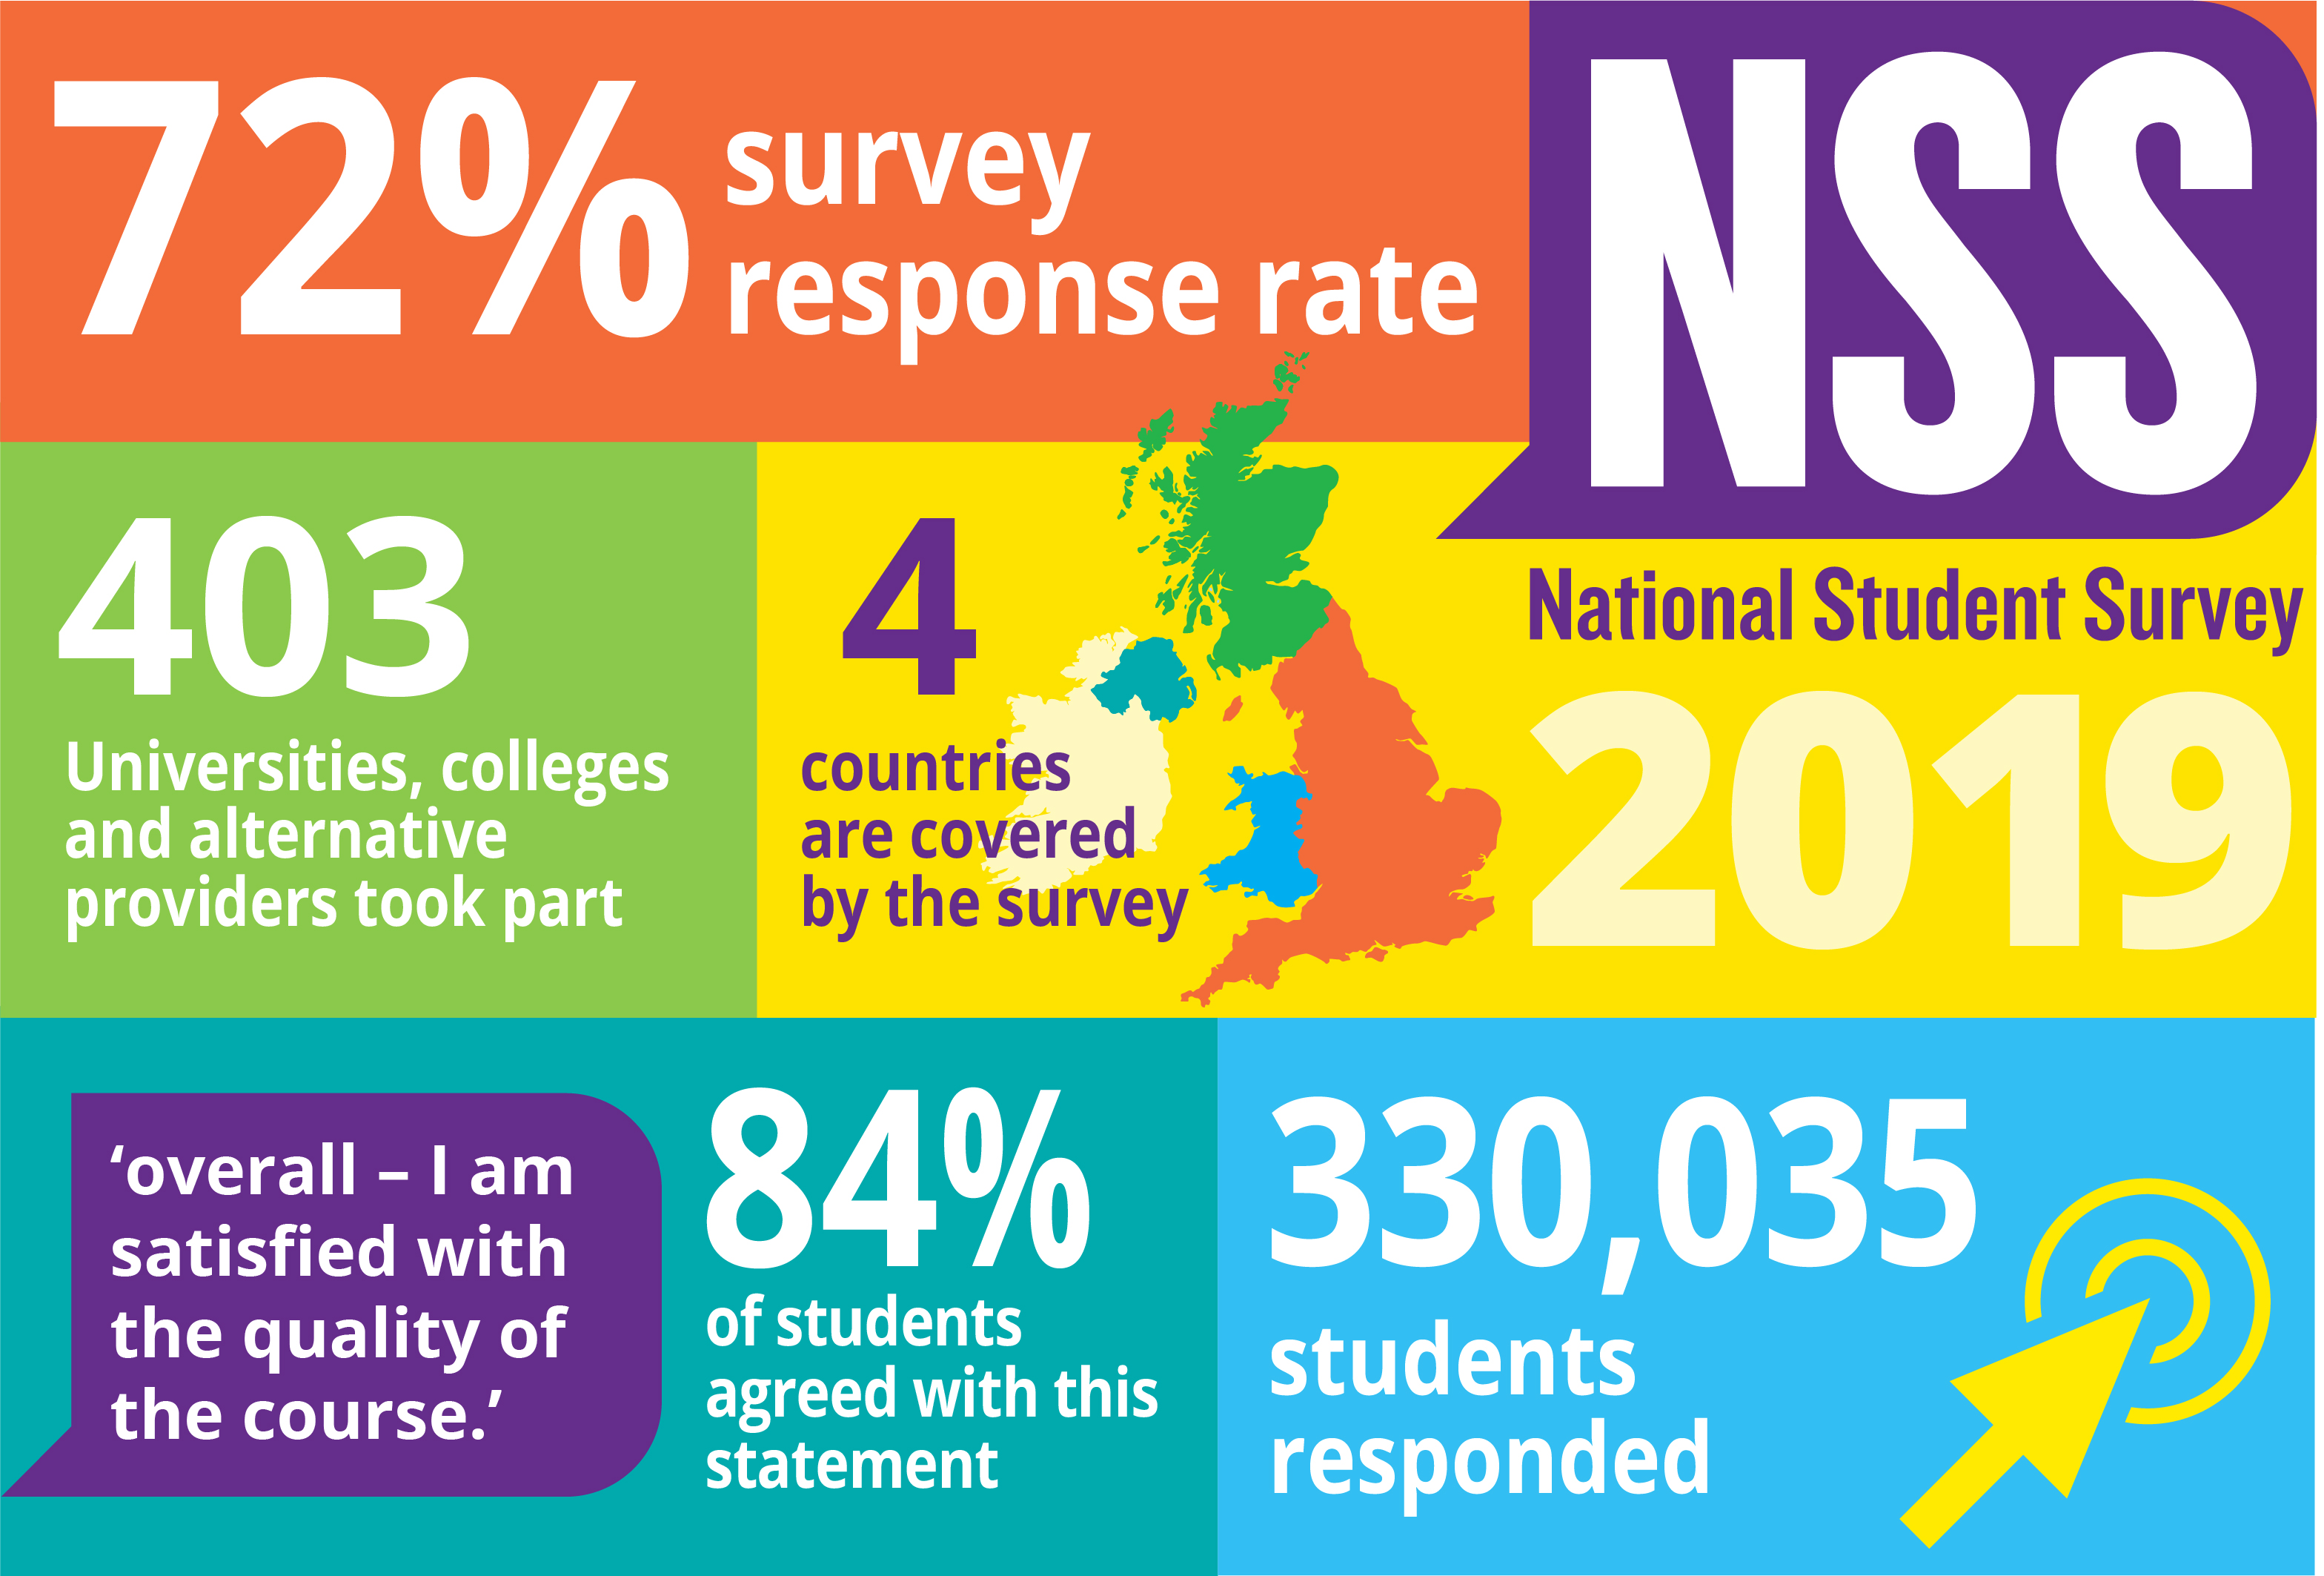 About the 2019 National Student Survey